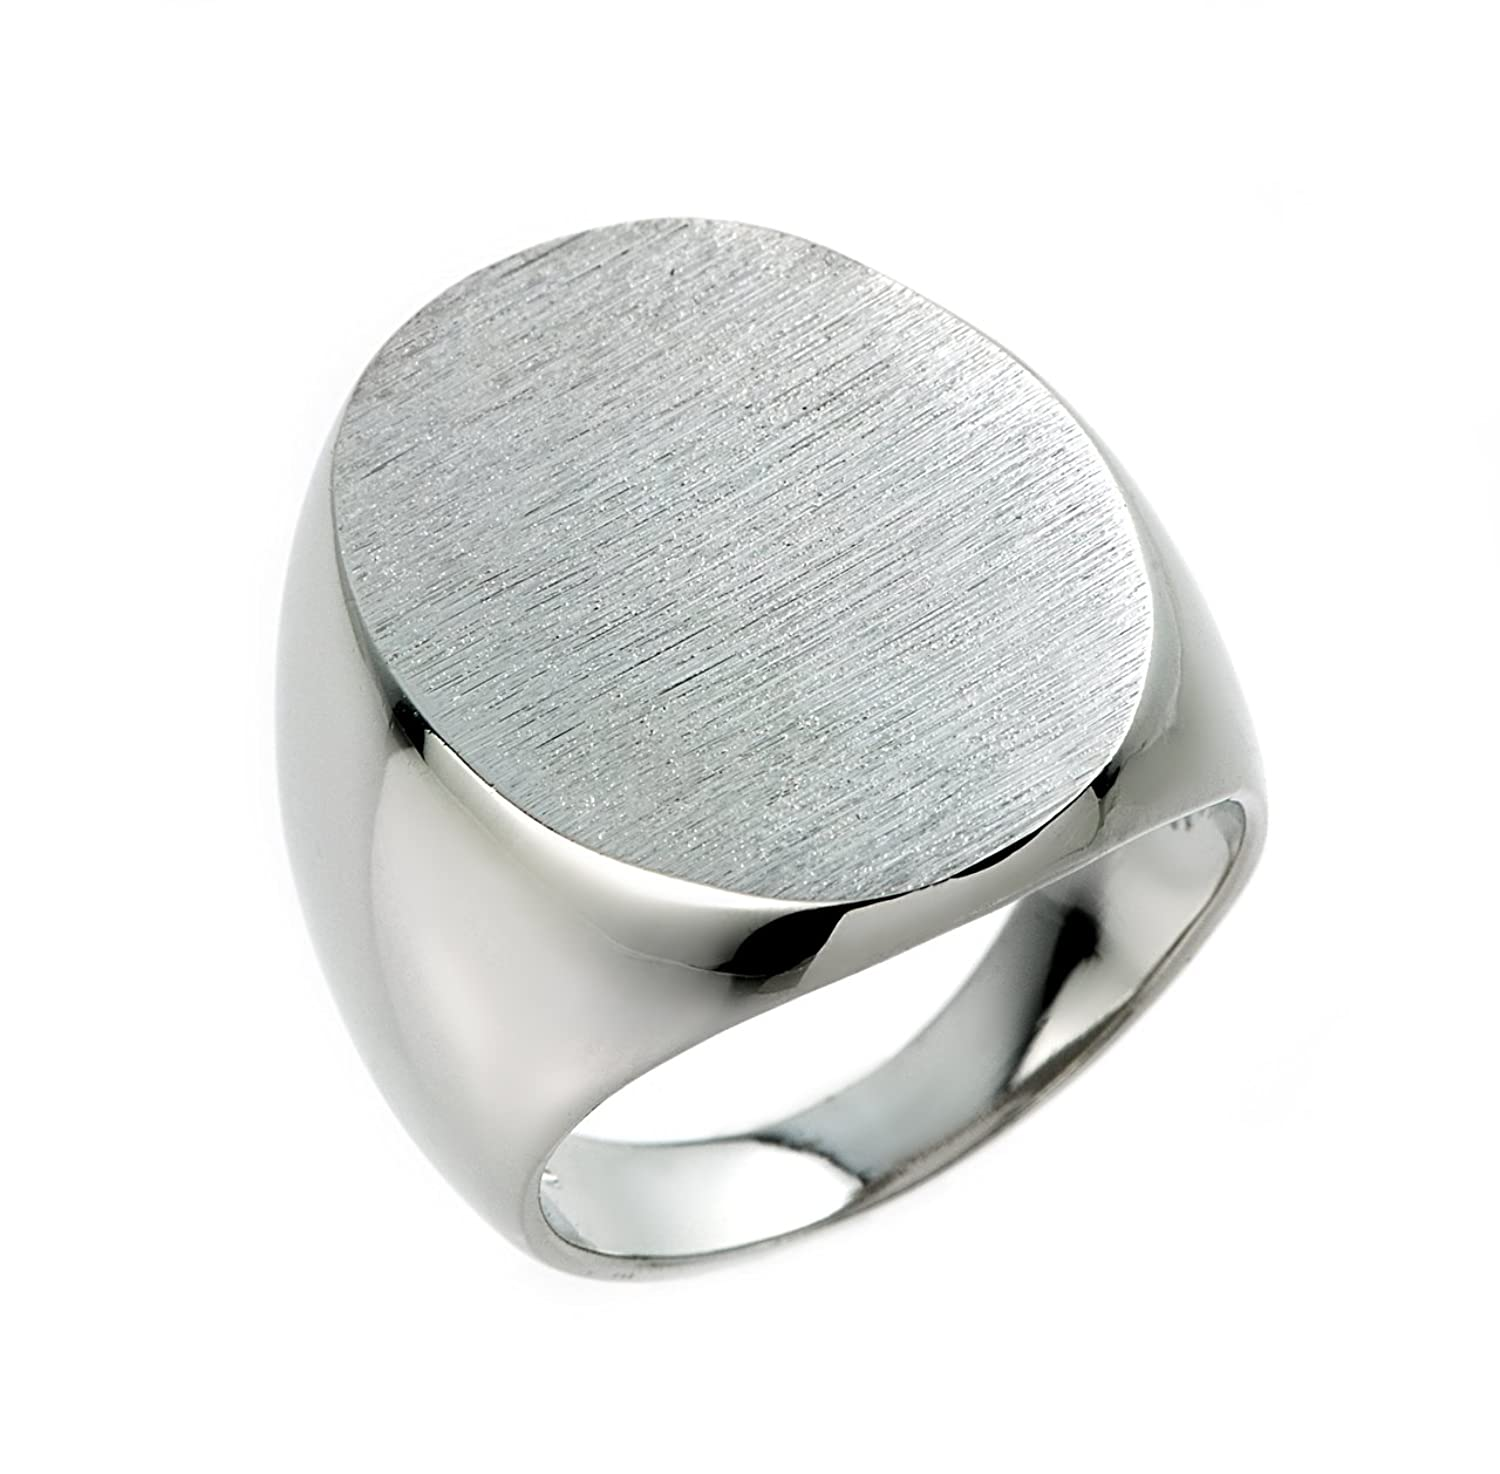 Solid Sterling Silver Engravable Plain Oval Top Signet Ring for